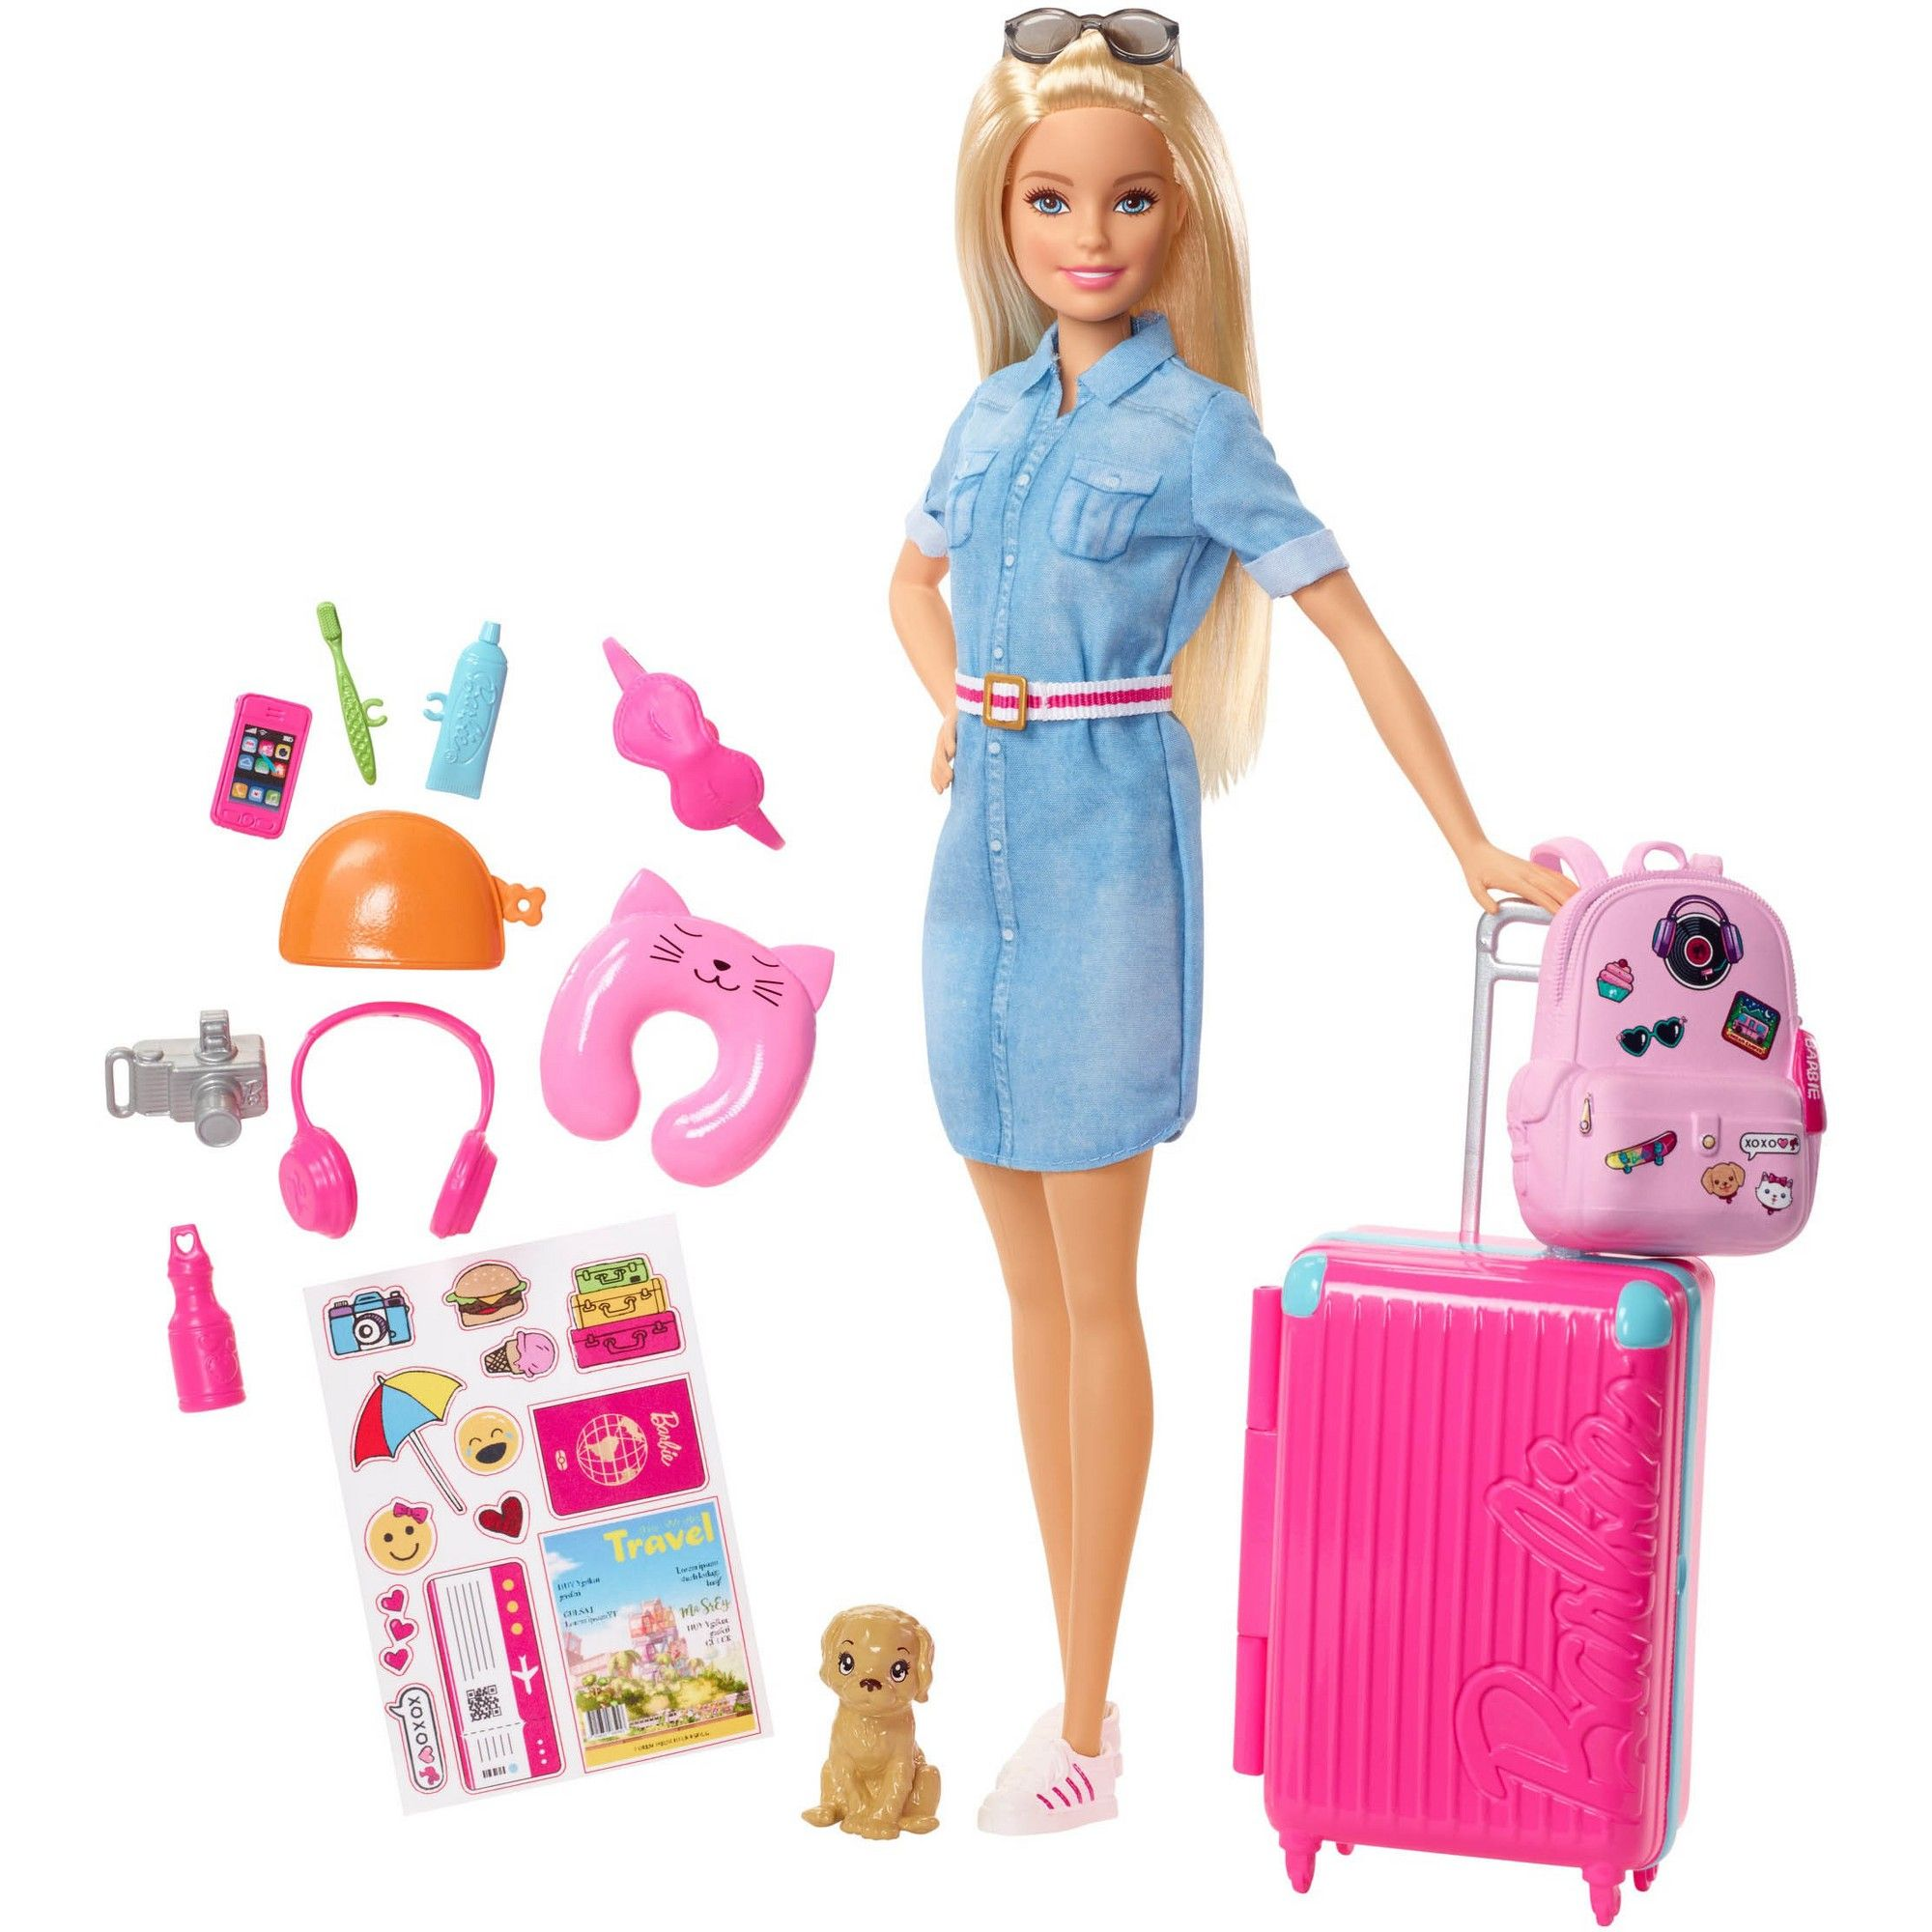 e763581b0a423 Barbie Travel Doll & Puppy Playset | Products | Barbie, Barbie doll ...